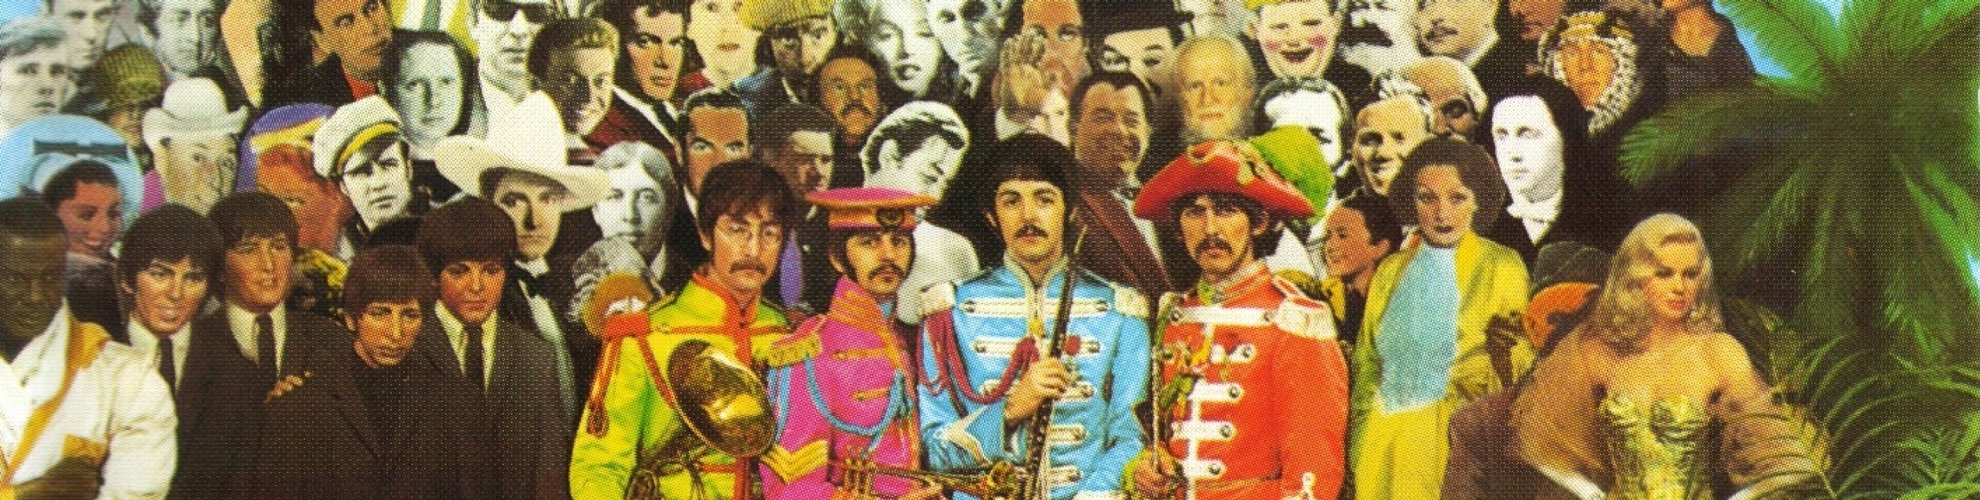 The Beatles: Sgt. Pepper's Lonely Hearts Club Band – It was fifty years ago today…